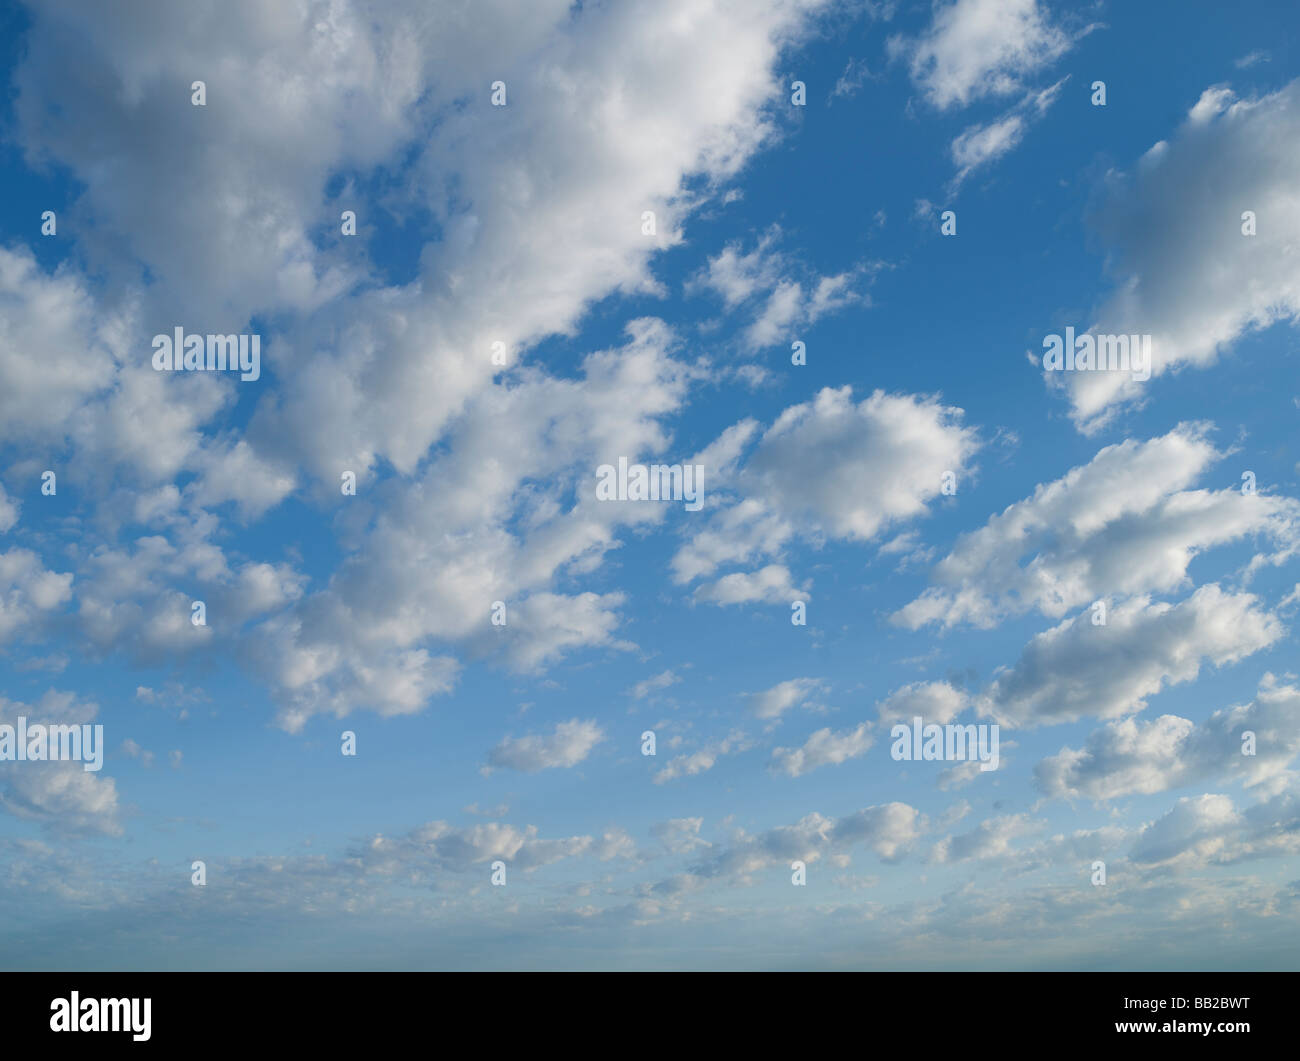 Blue Sky with puffy clouds - Stock Image